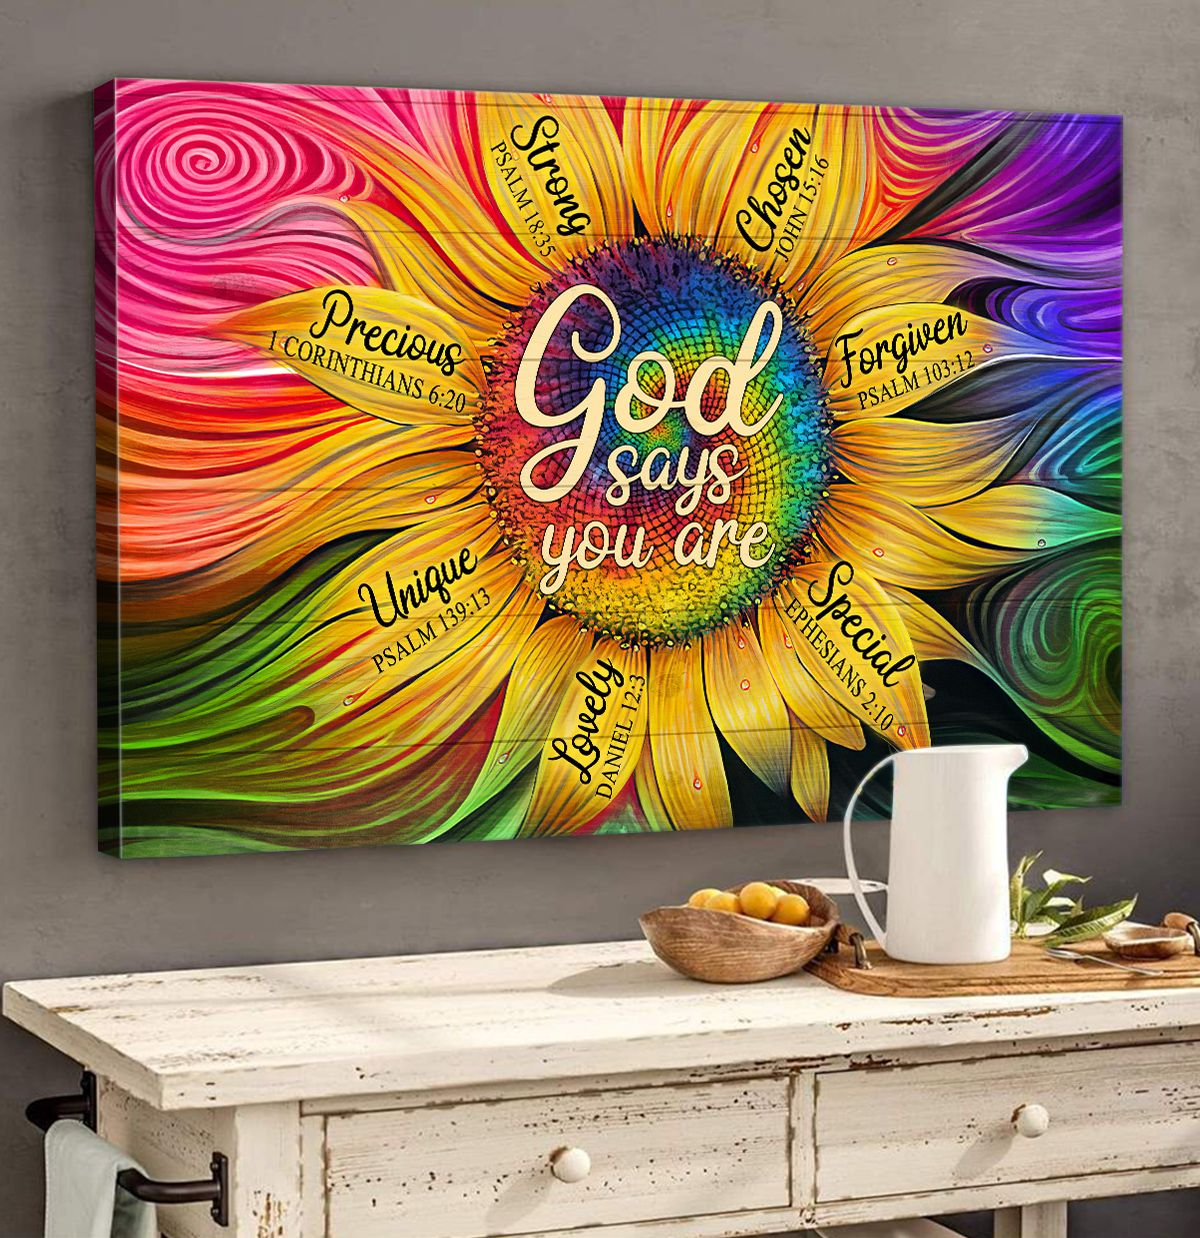 God says you are lovely strong unique sunflower canvas